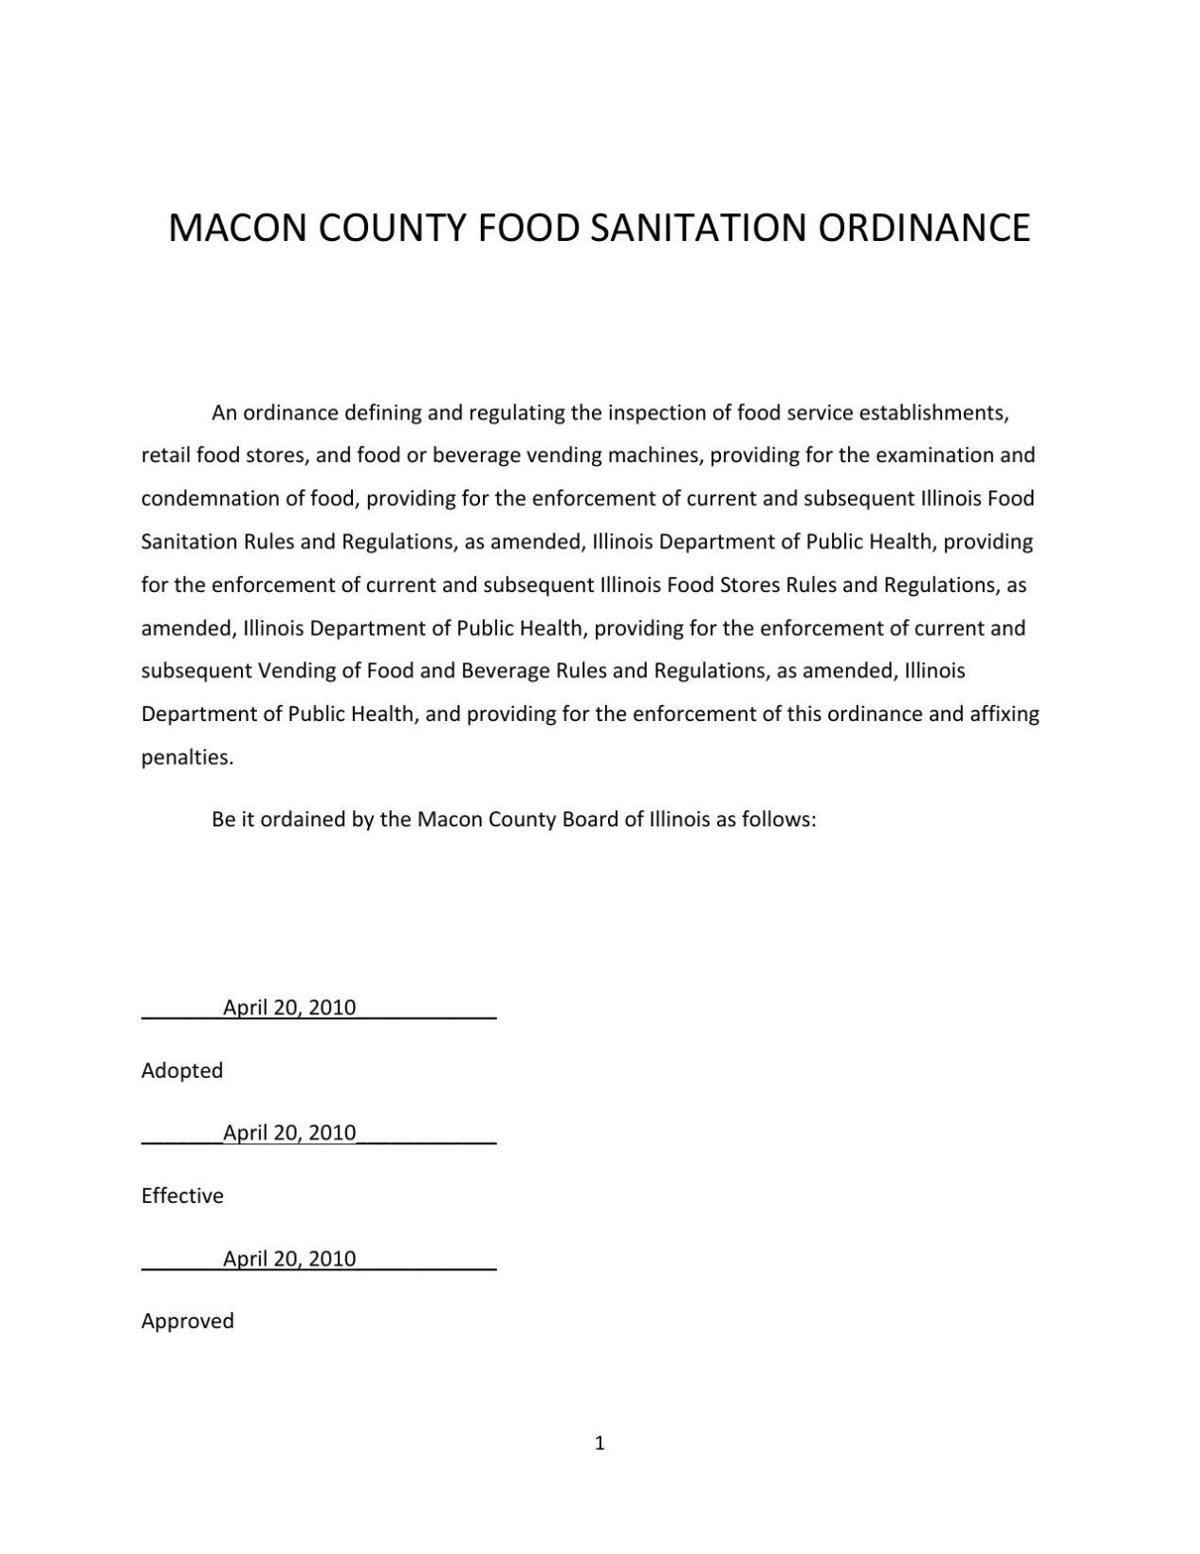 Macon County Food Sanitation Ordinance